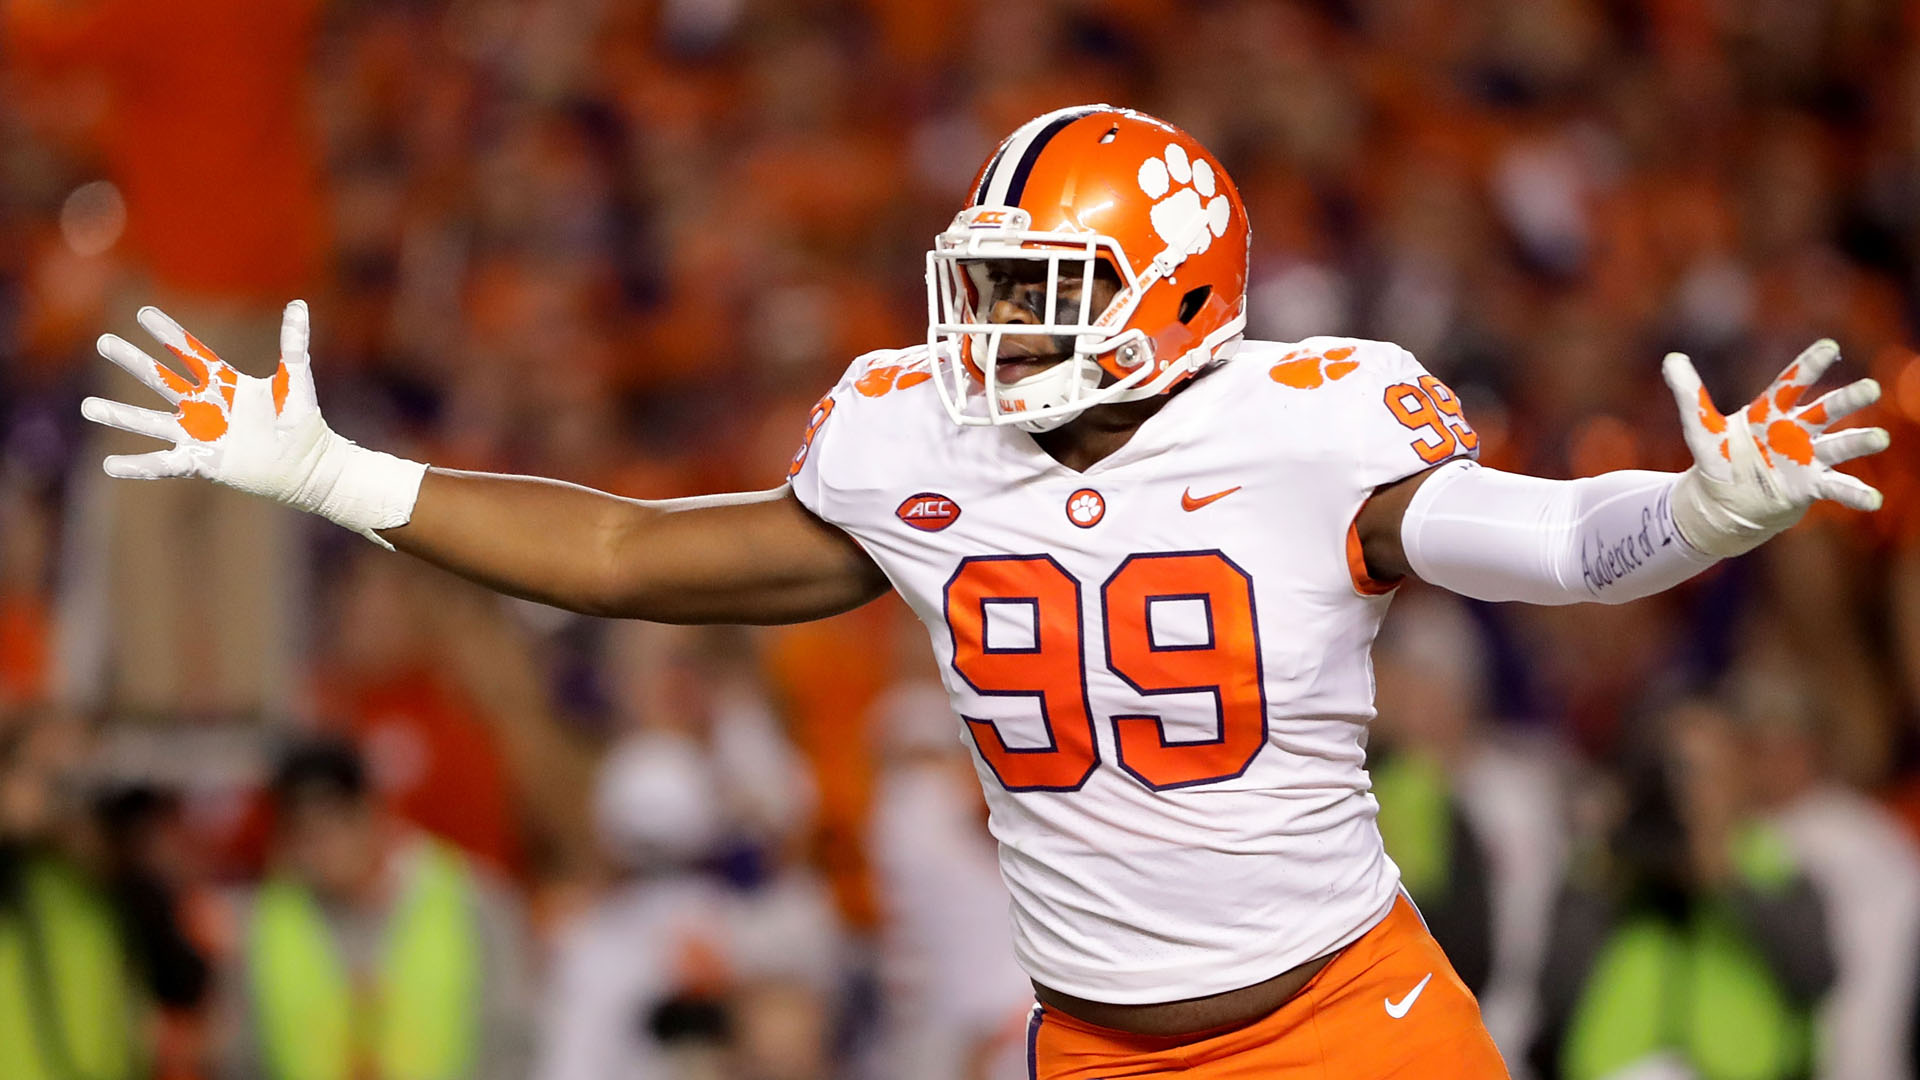 Clemson's Christian Wilkins makes National Football League decision